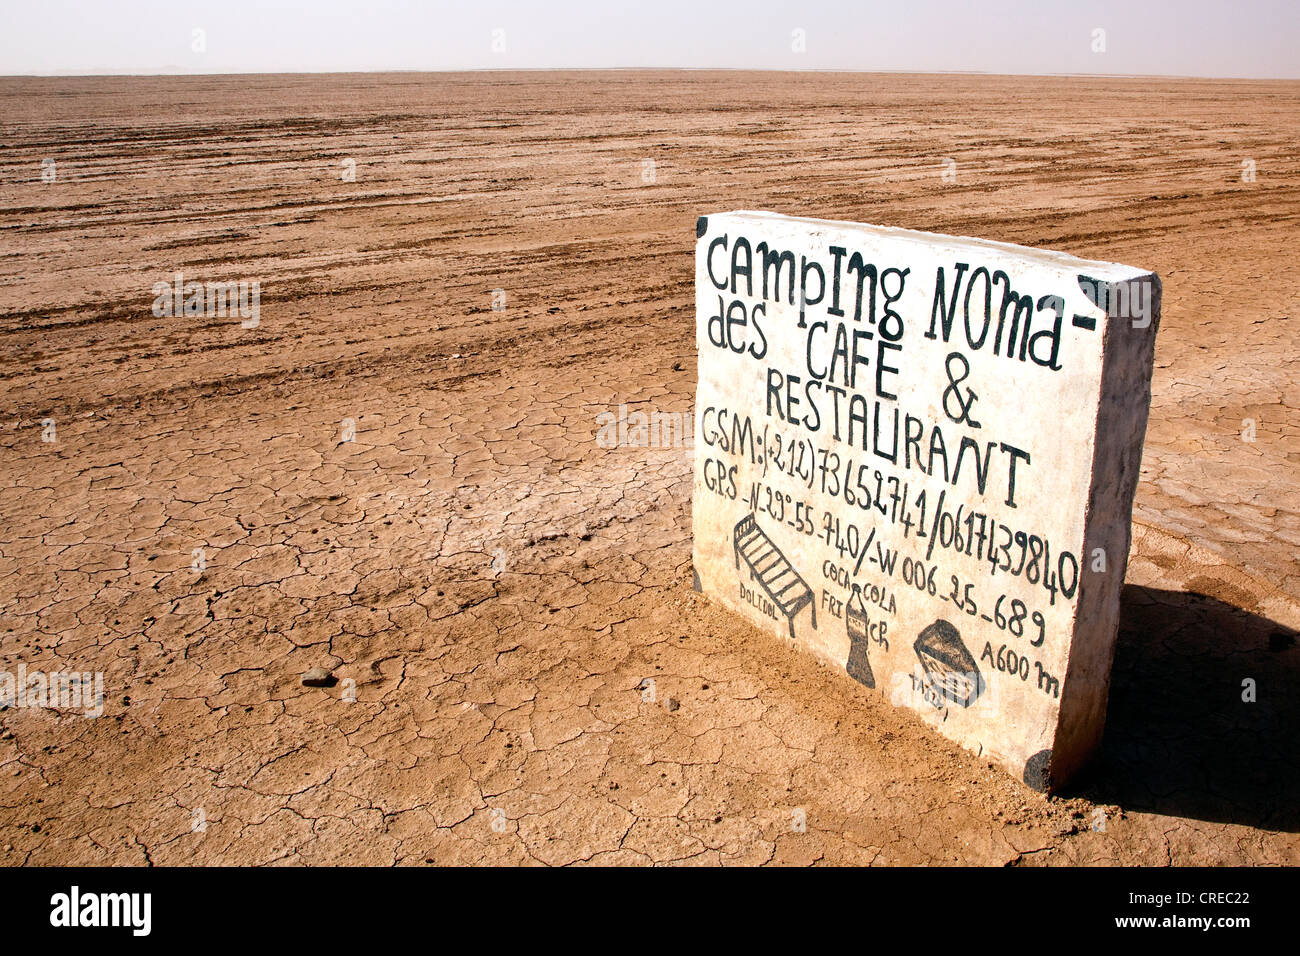 Sign for a camp site at the beginning of the Sahara Desert near Mhamid, Morocco, Africa - Stock Image